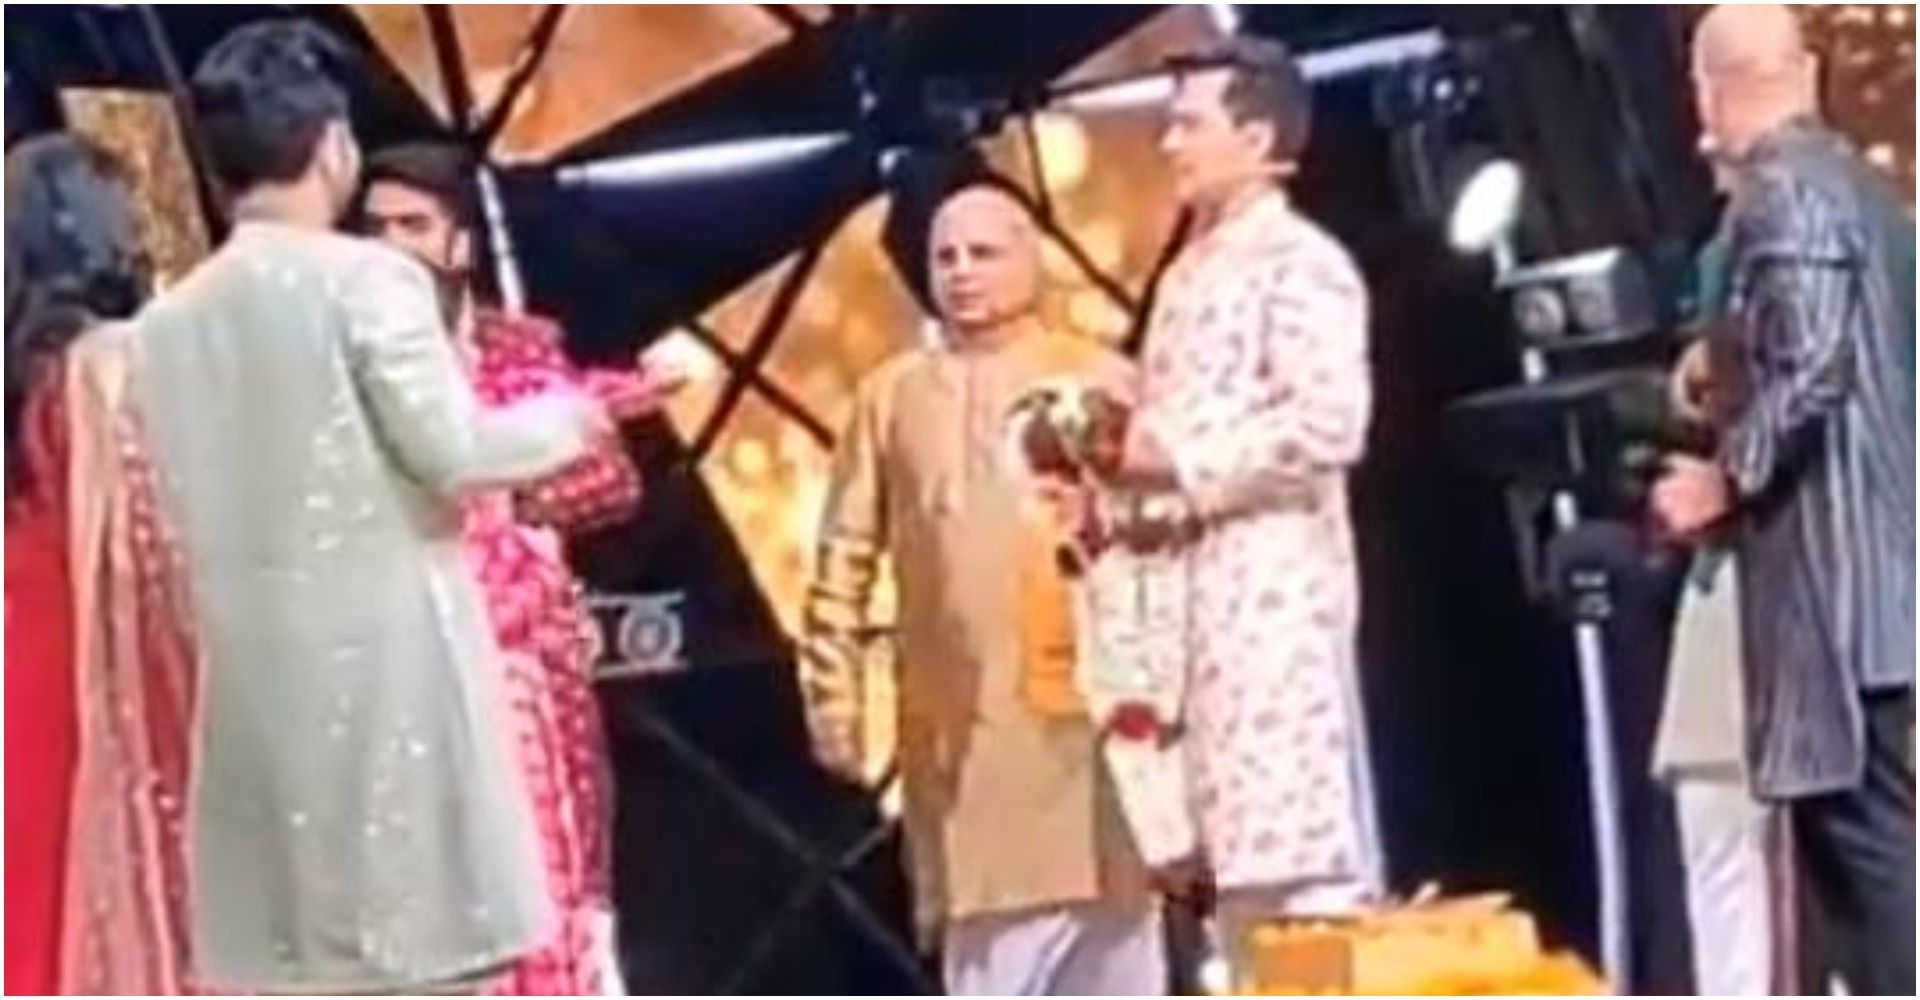 Neha And Aditya Wedding Neha Kakkar And Aditya Narayan Married On The Set Of Indian Idol 11 The Video Went Viral In 2020 Indian Idol Neha Kakkar Video Go